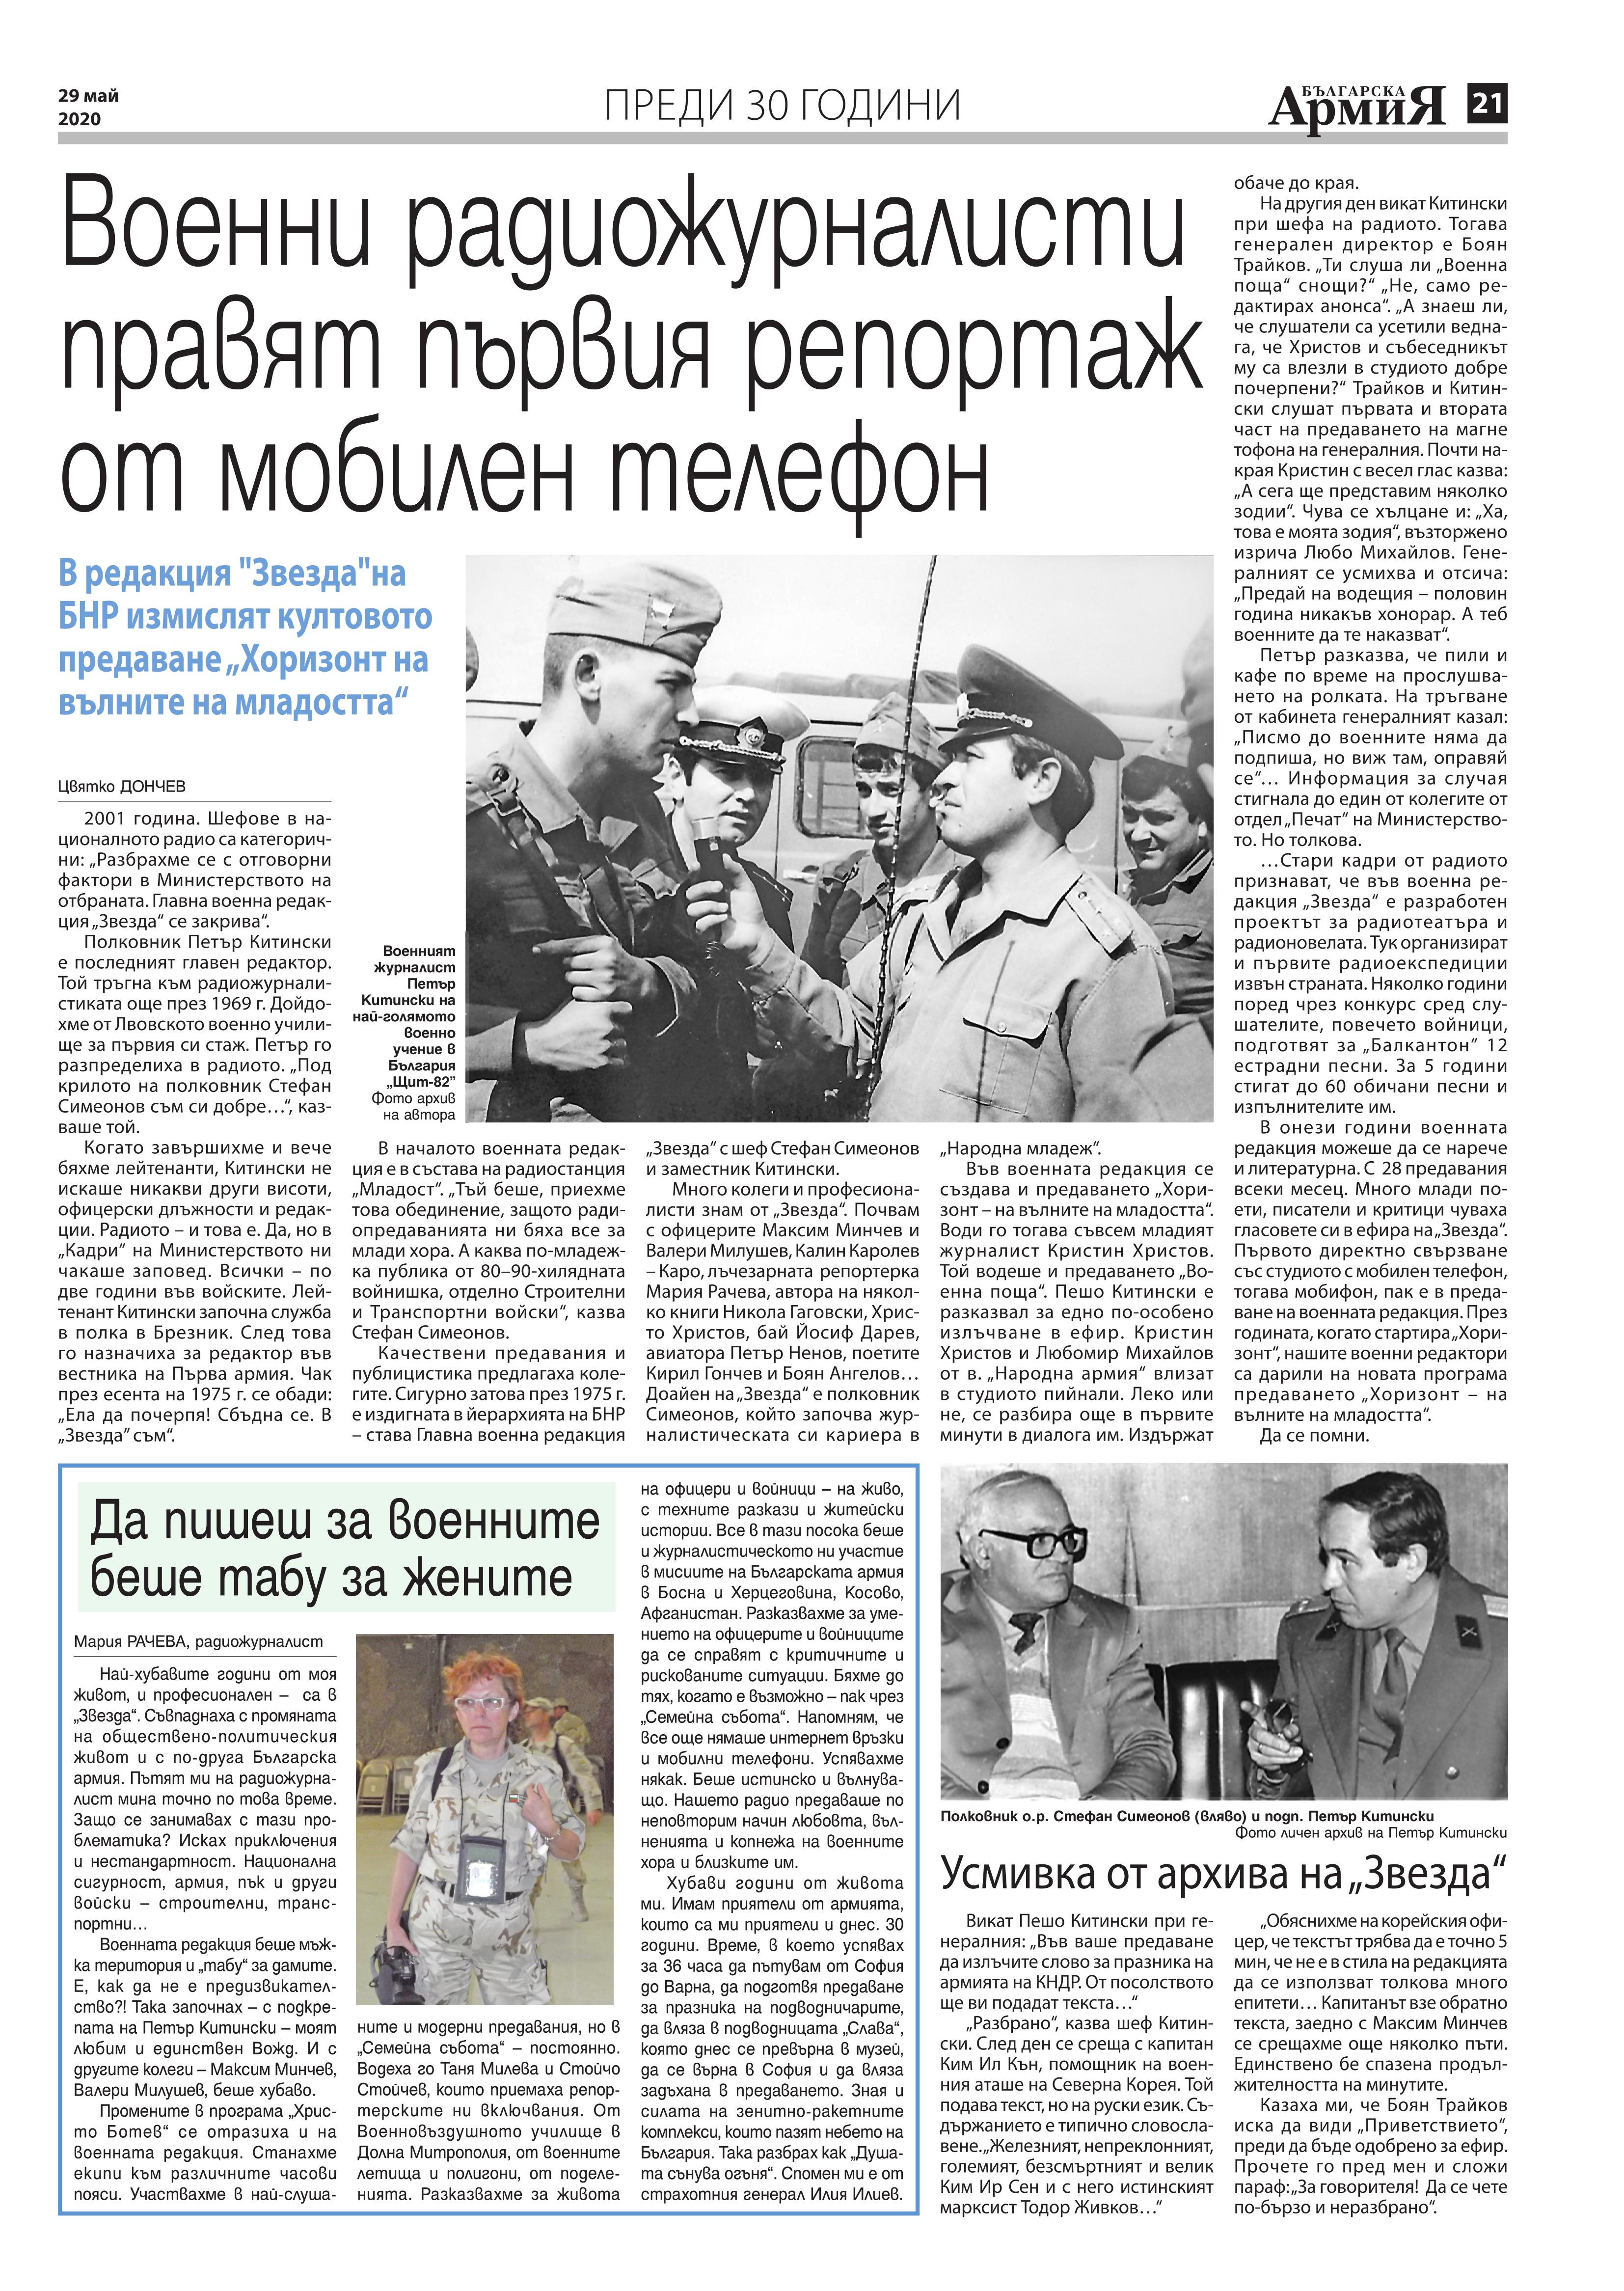 https://www.armymedia.bg/wp-content/uploads/2015/06/21.page1_-141.jpg